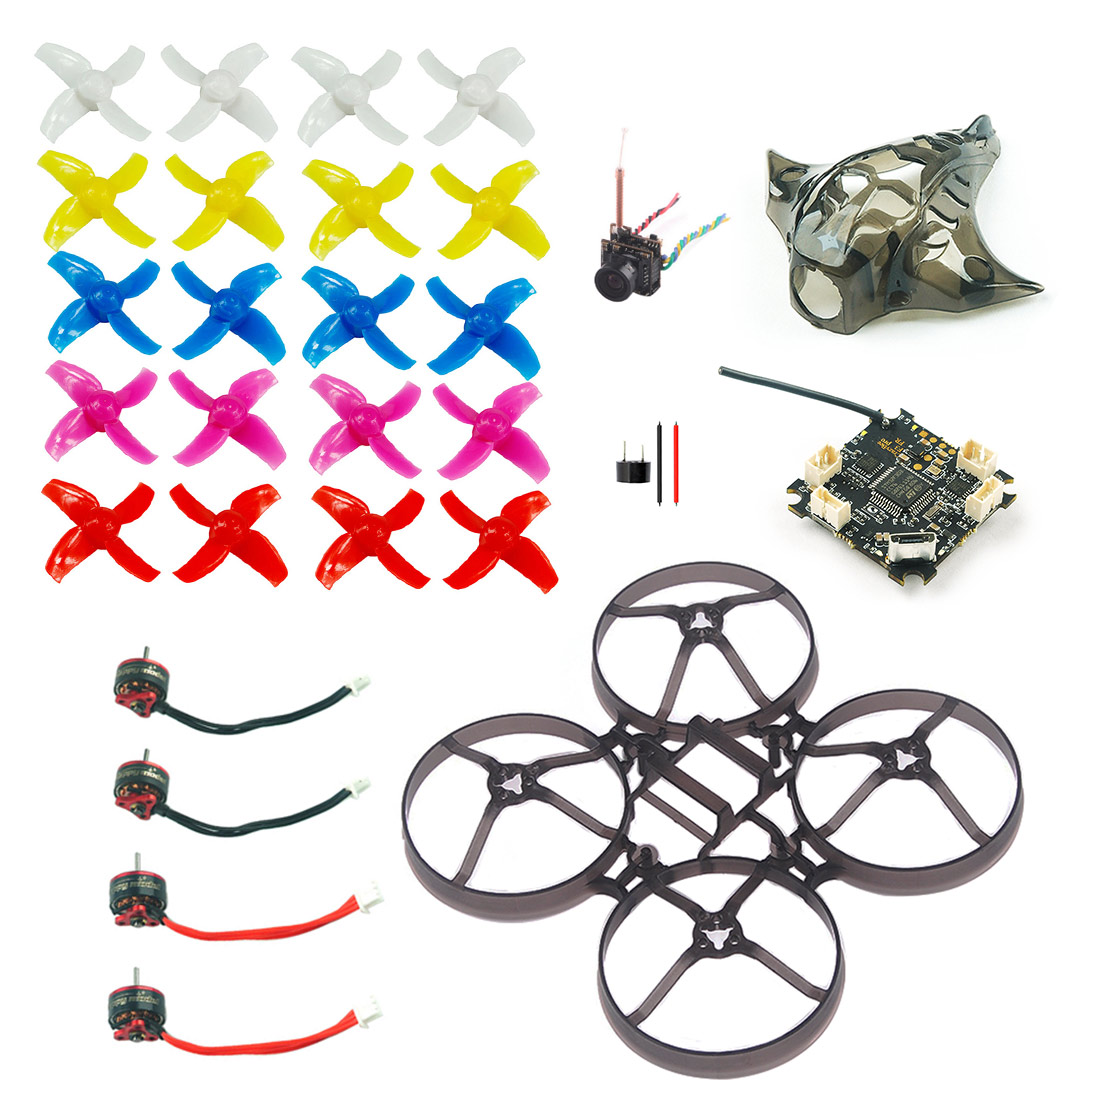 Crazybee F3 Pro FC Mobula7 V2 Frame Canopy SE0802 1 2S Brushless Motor 40mm Propellers Replacement Parts for Mobula 7 Quadcopter